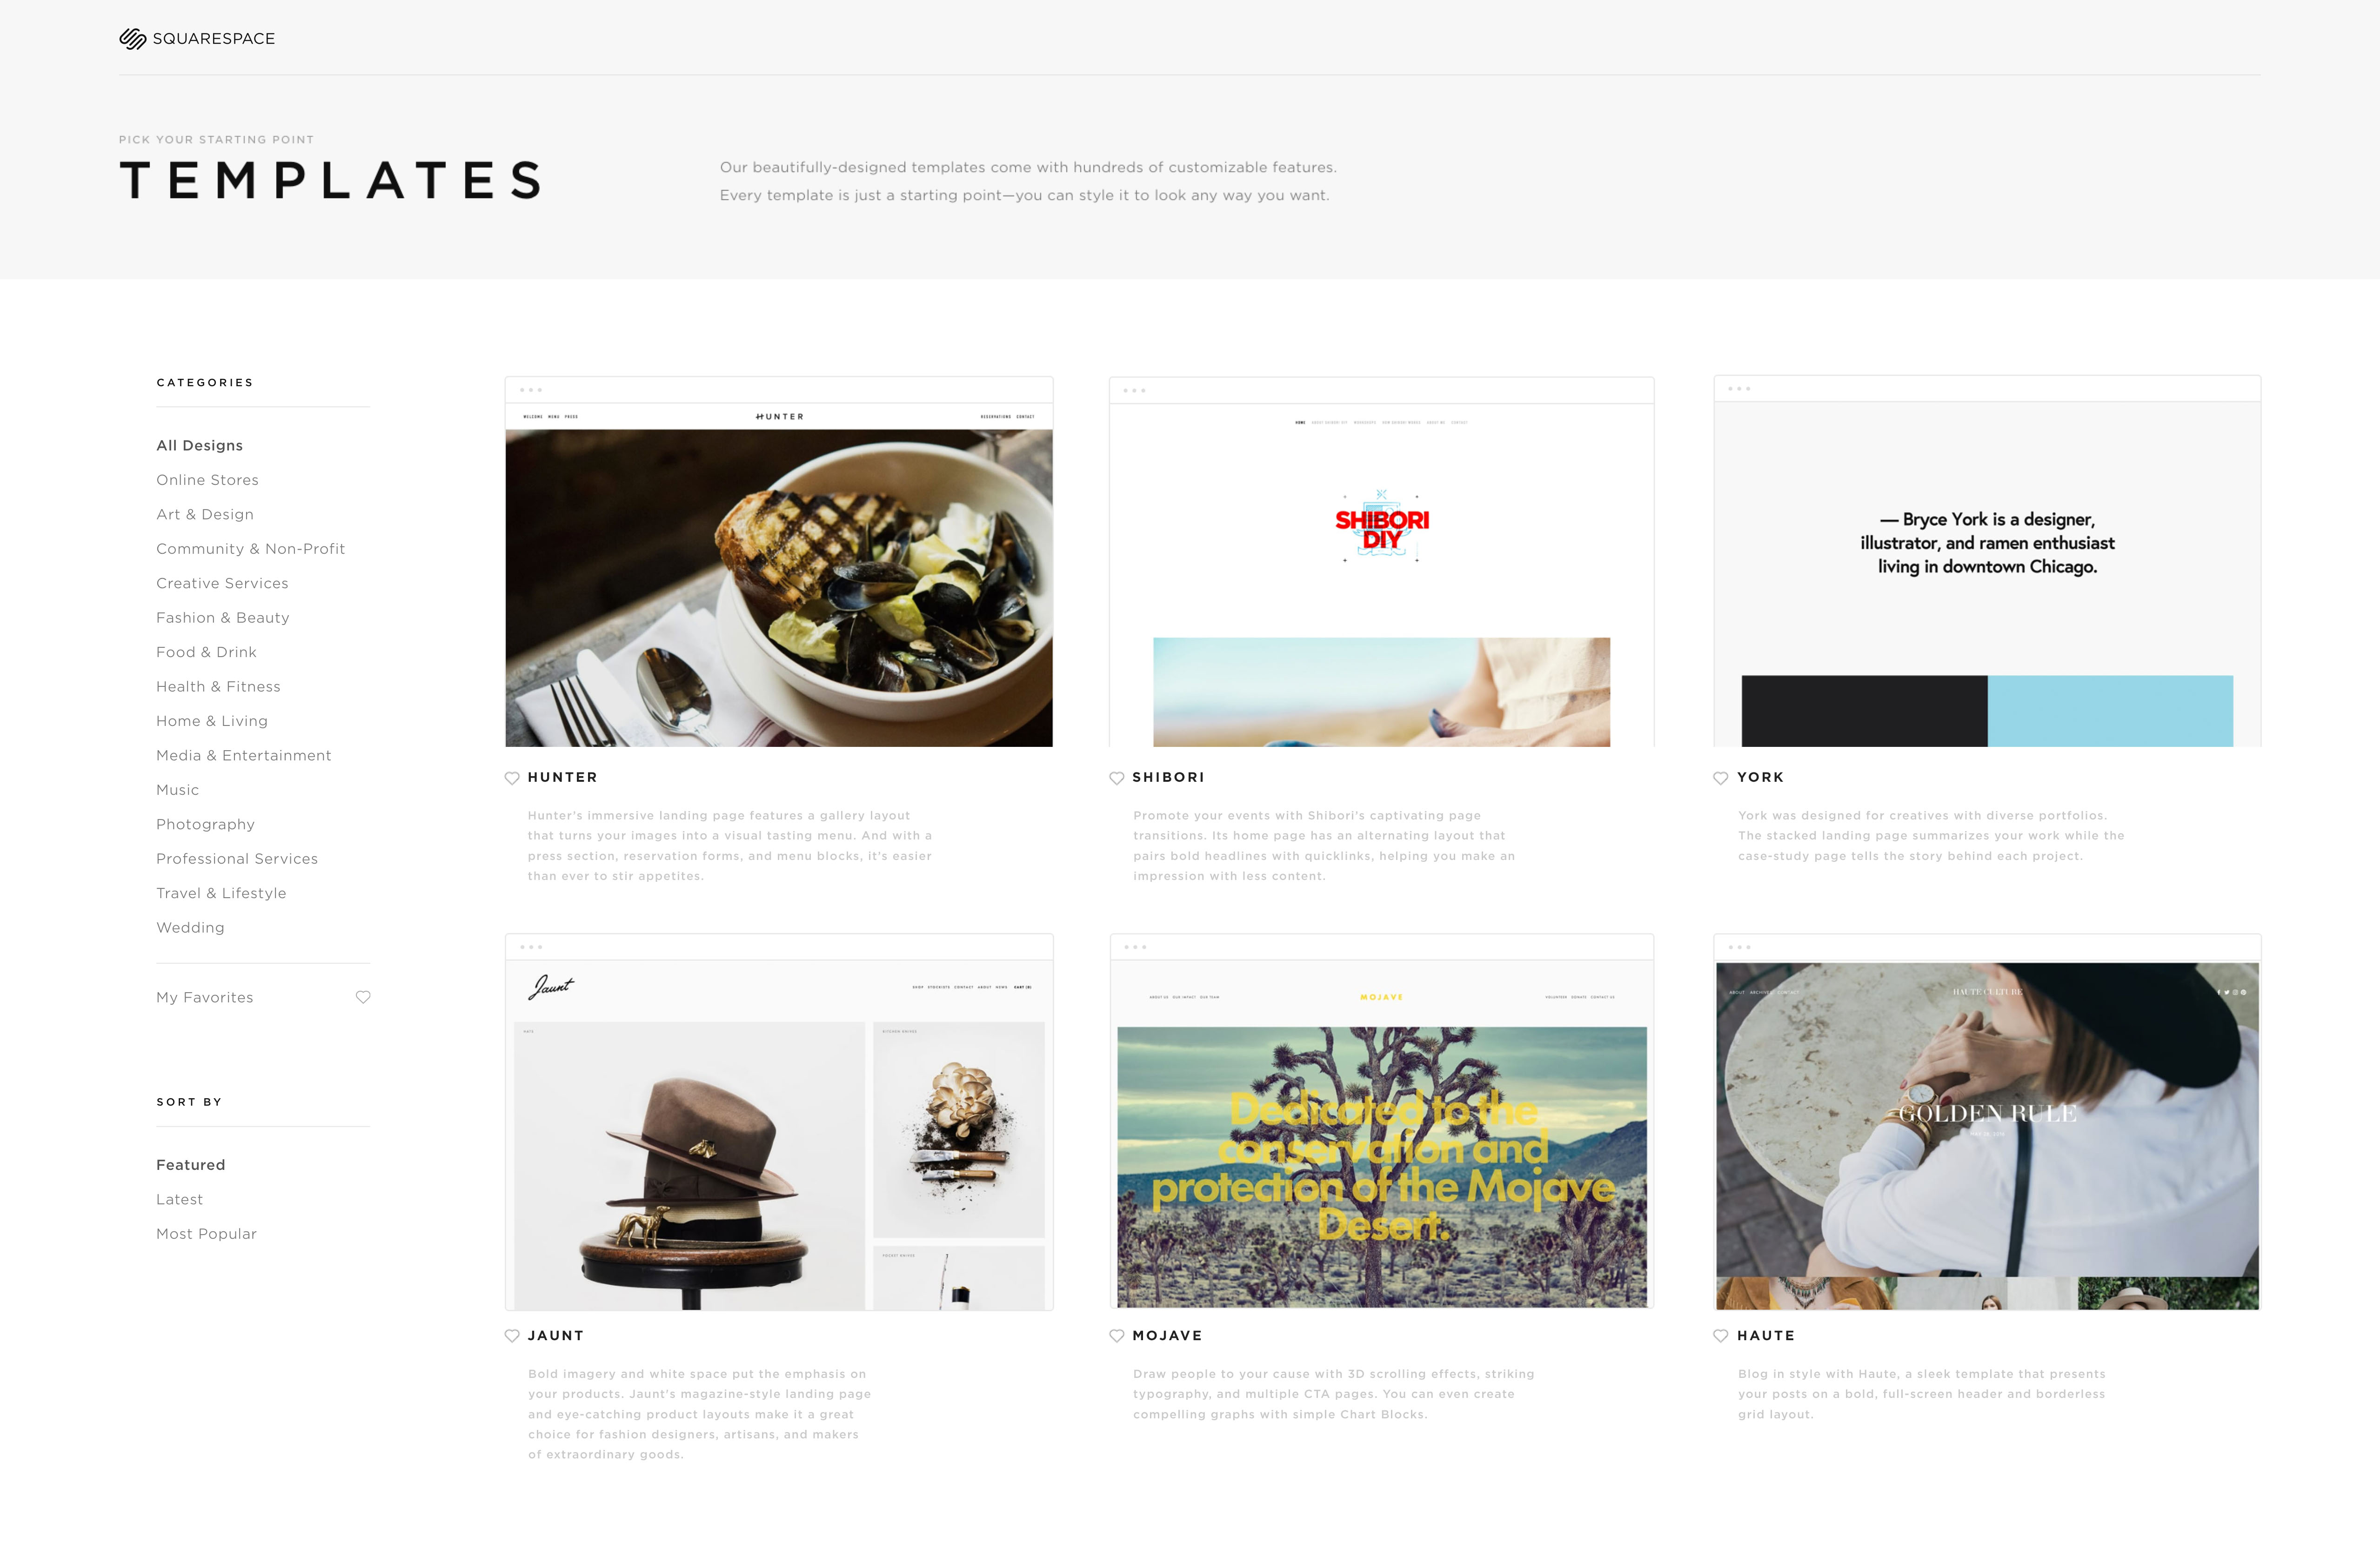 templates-page-mock-upArtboard_1